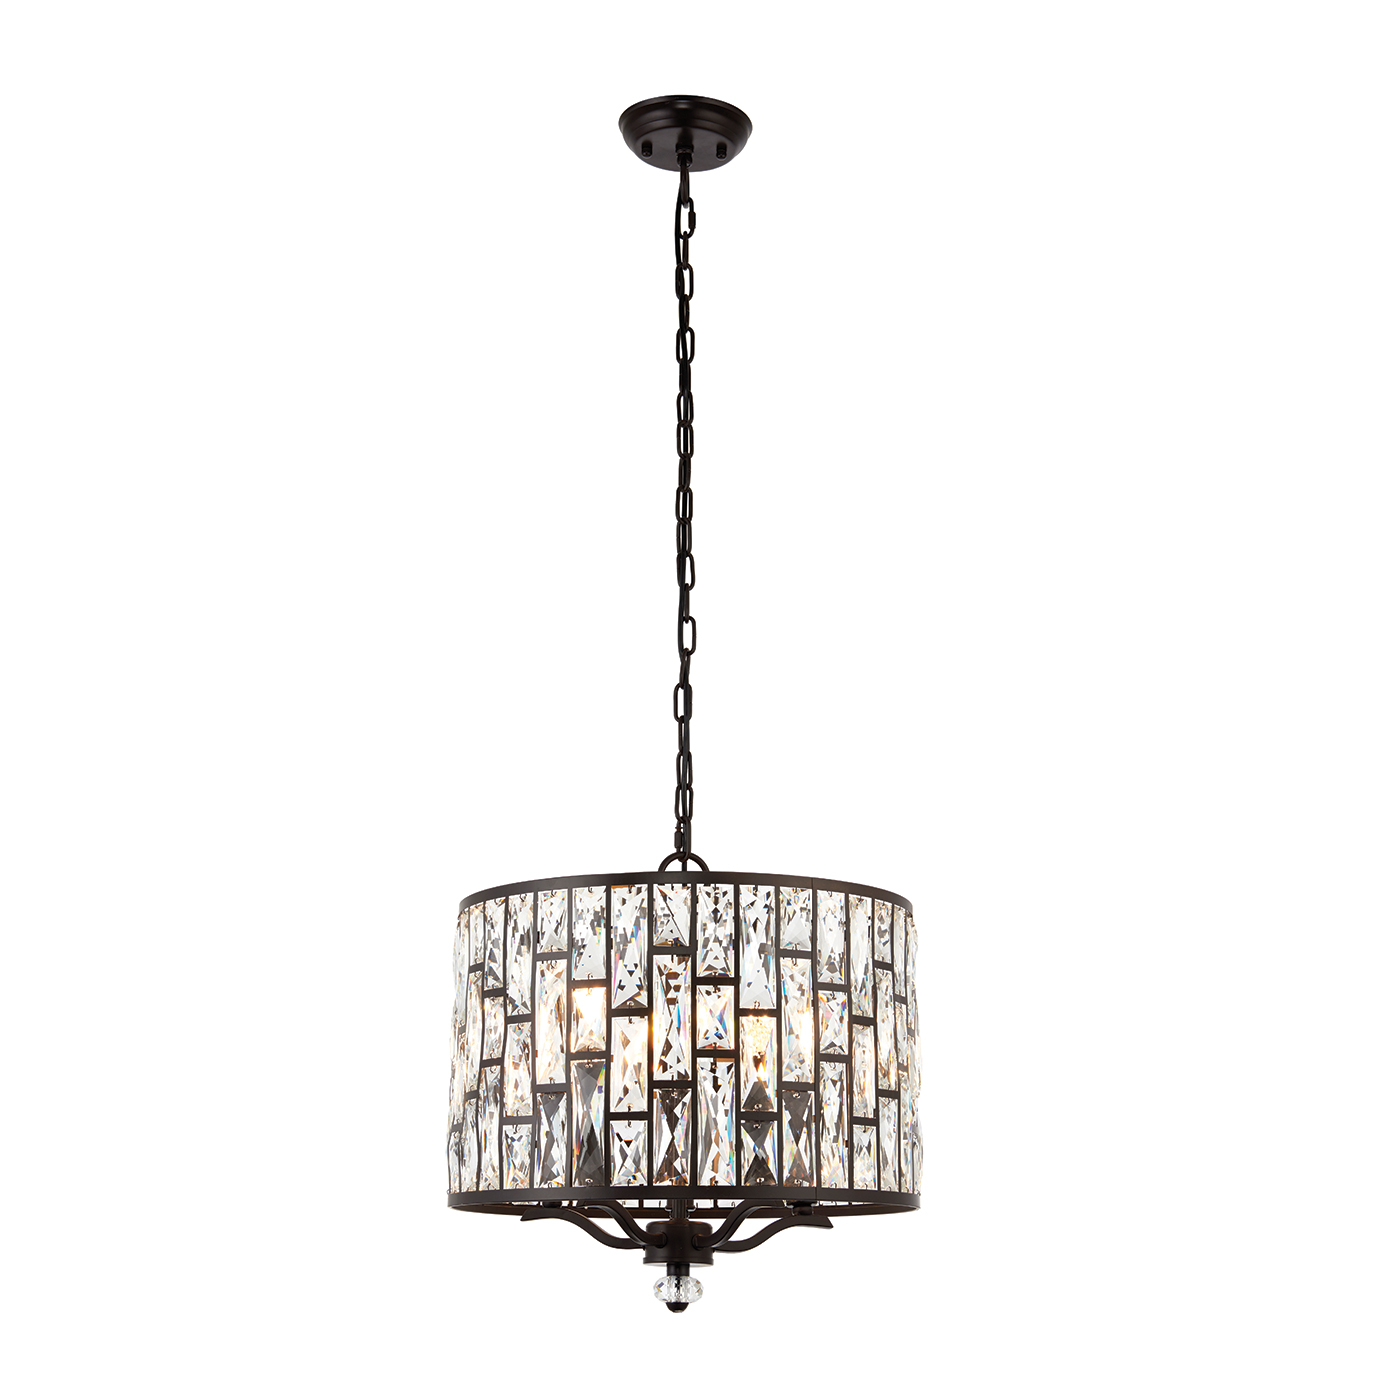 Endon Belle pendant 5x 40W Dark bronze effect plate & clear crystal